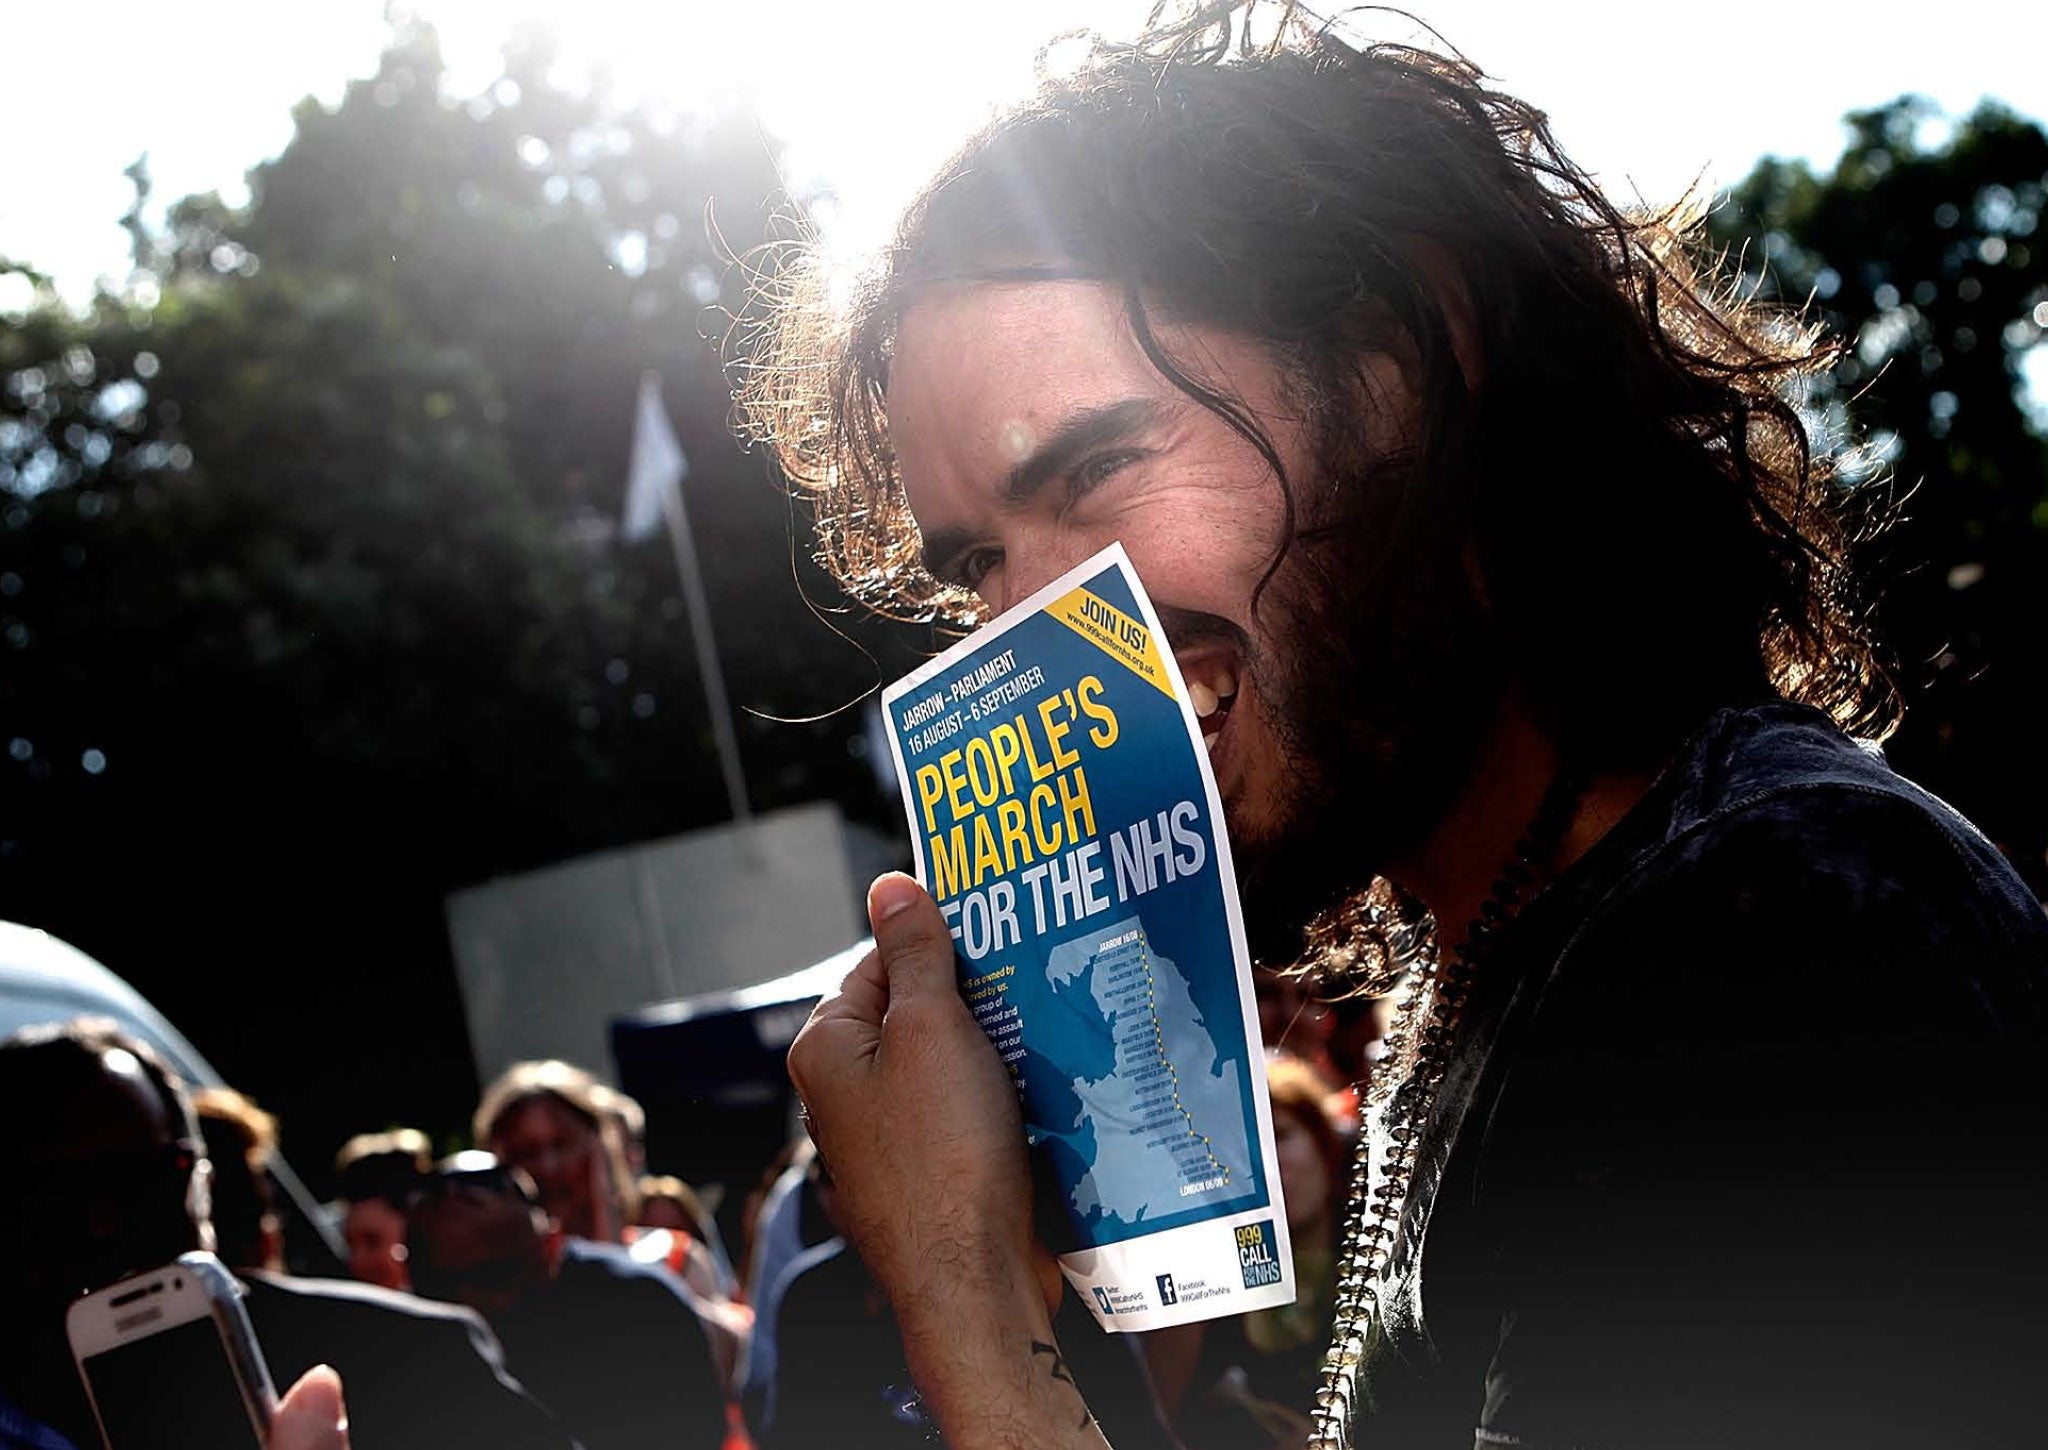 If you think Russell Brand's new book is confused, you should read what his critics have to say about it